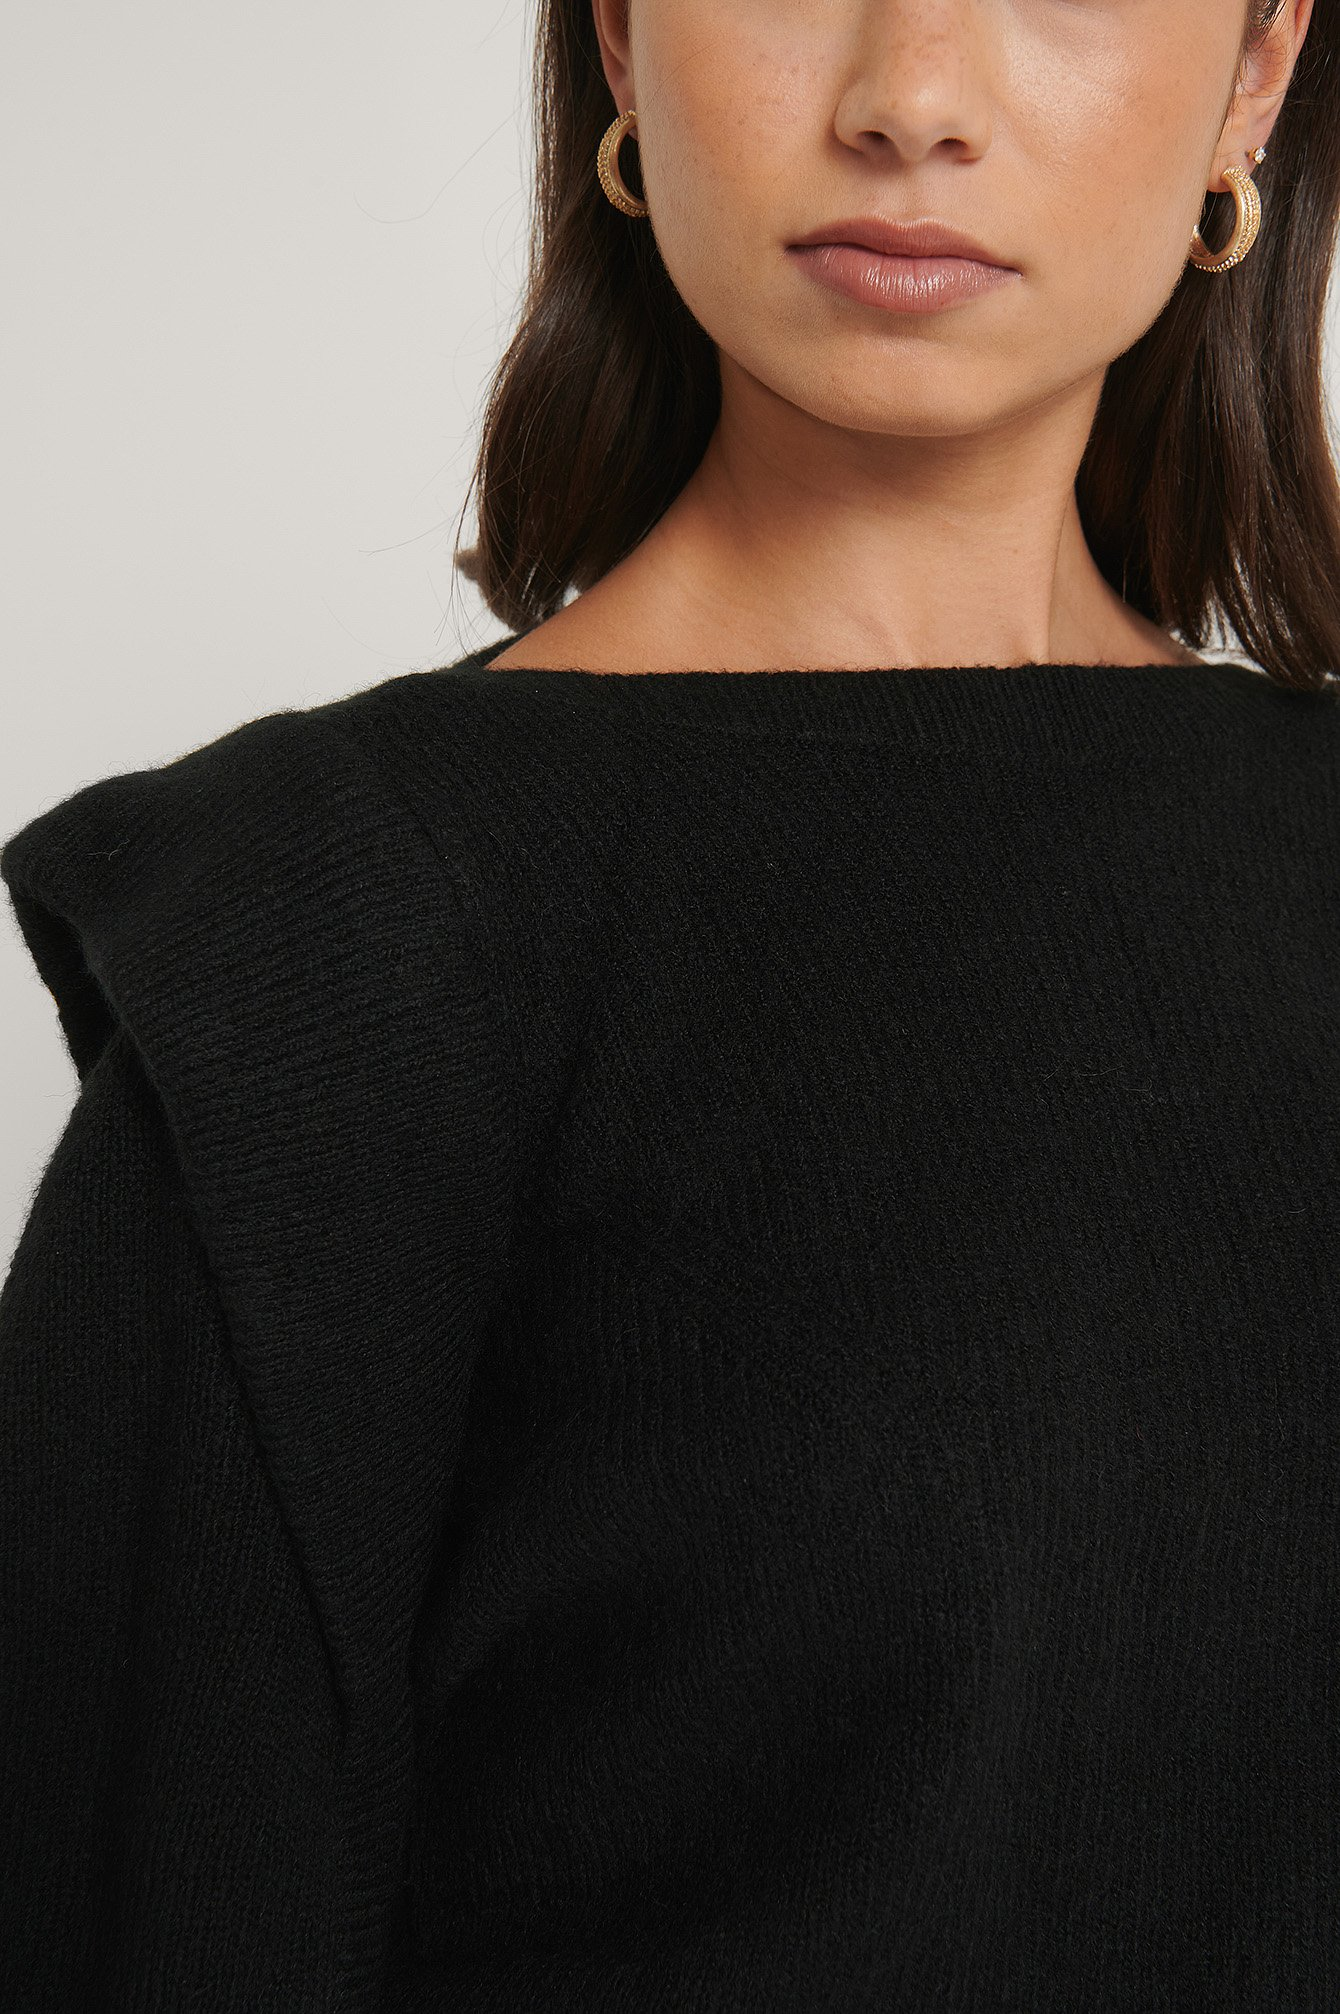 Black Wool Blend Volume Sleeve Knitted Sweater